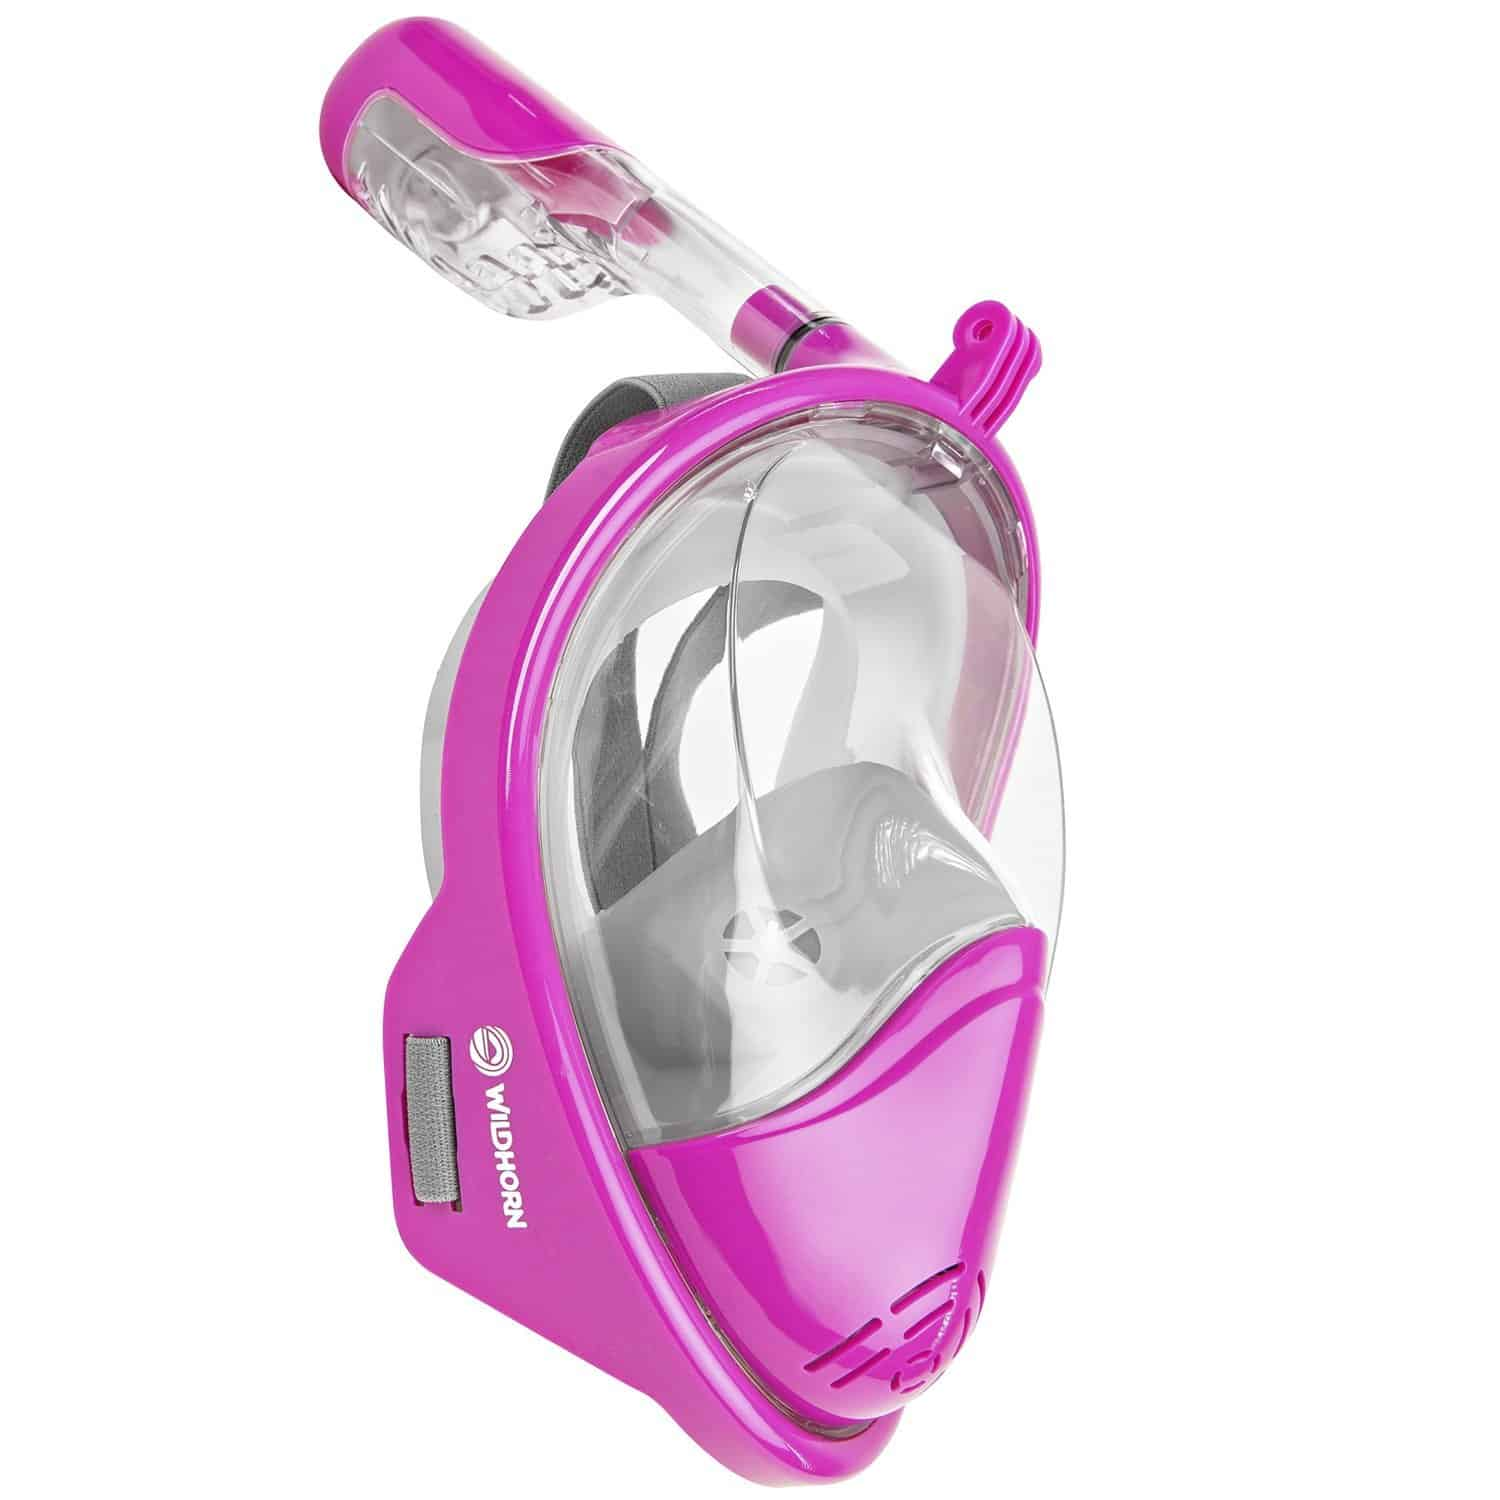 Seaview 180° Panoramic Lotus Full Face Snorkeling Mask